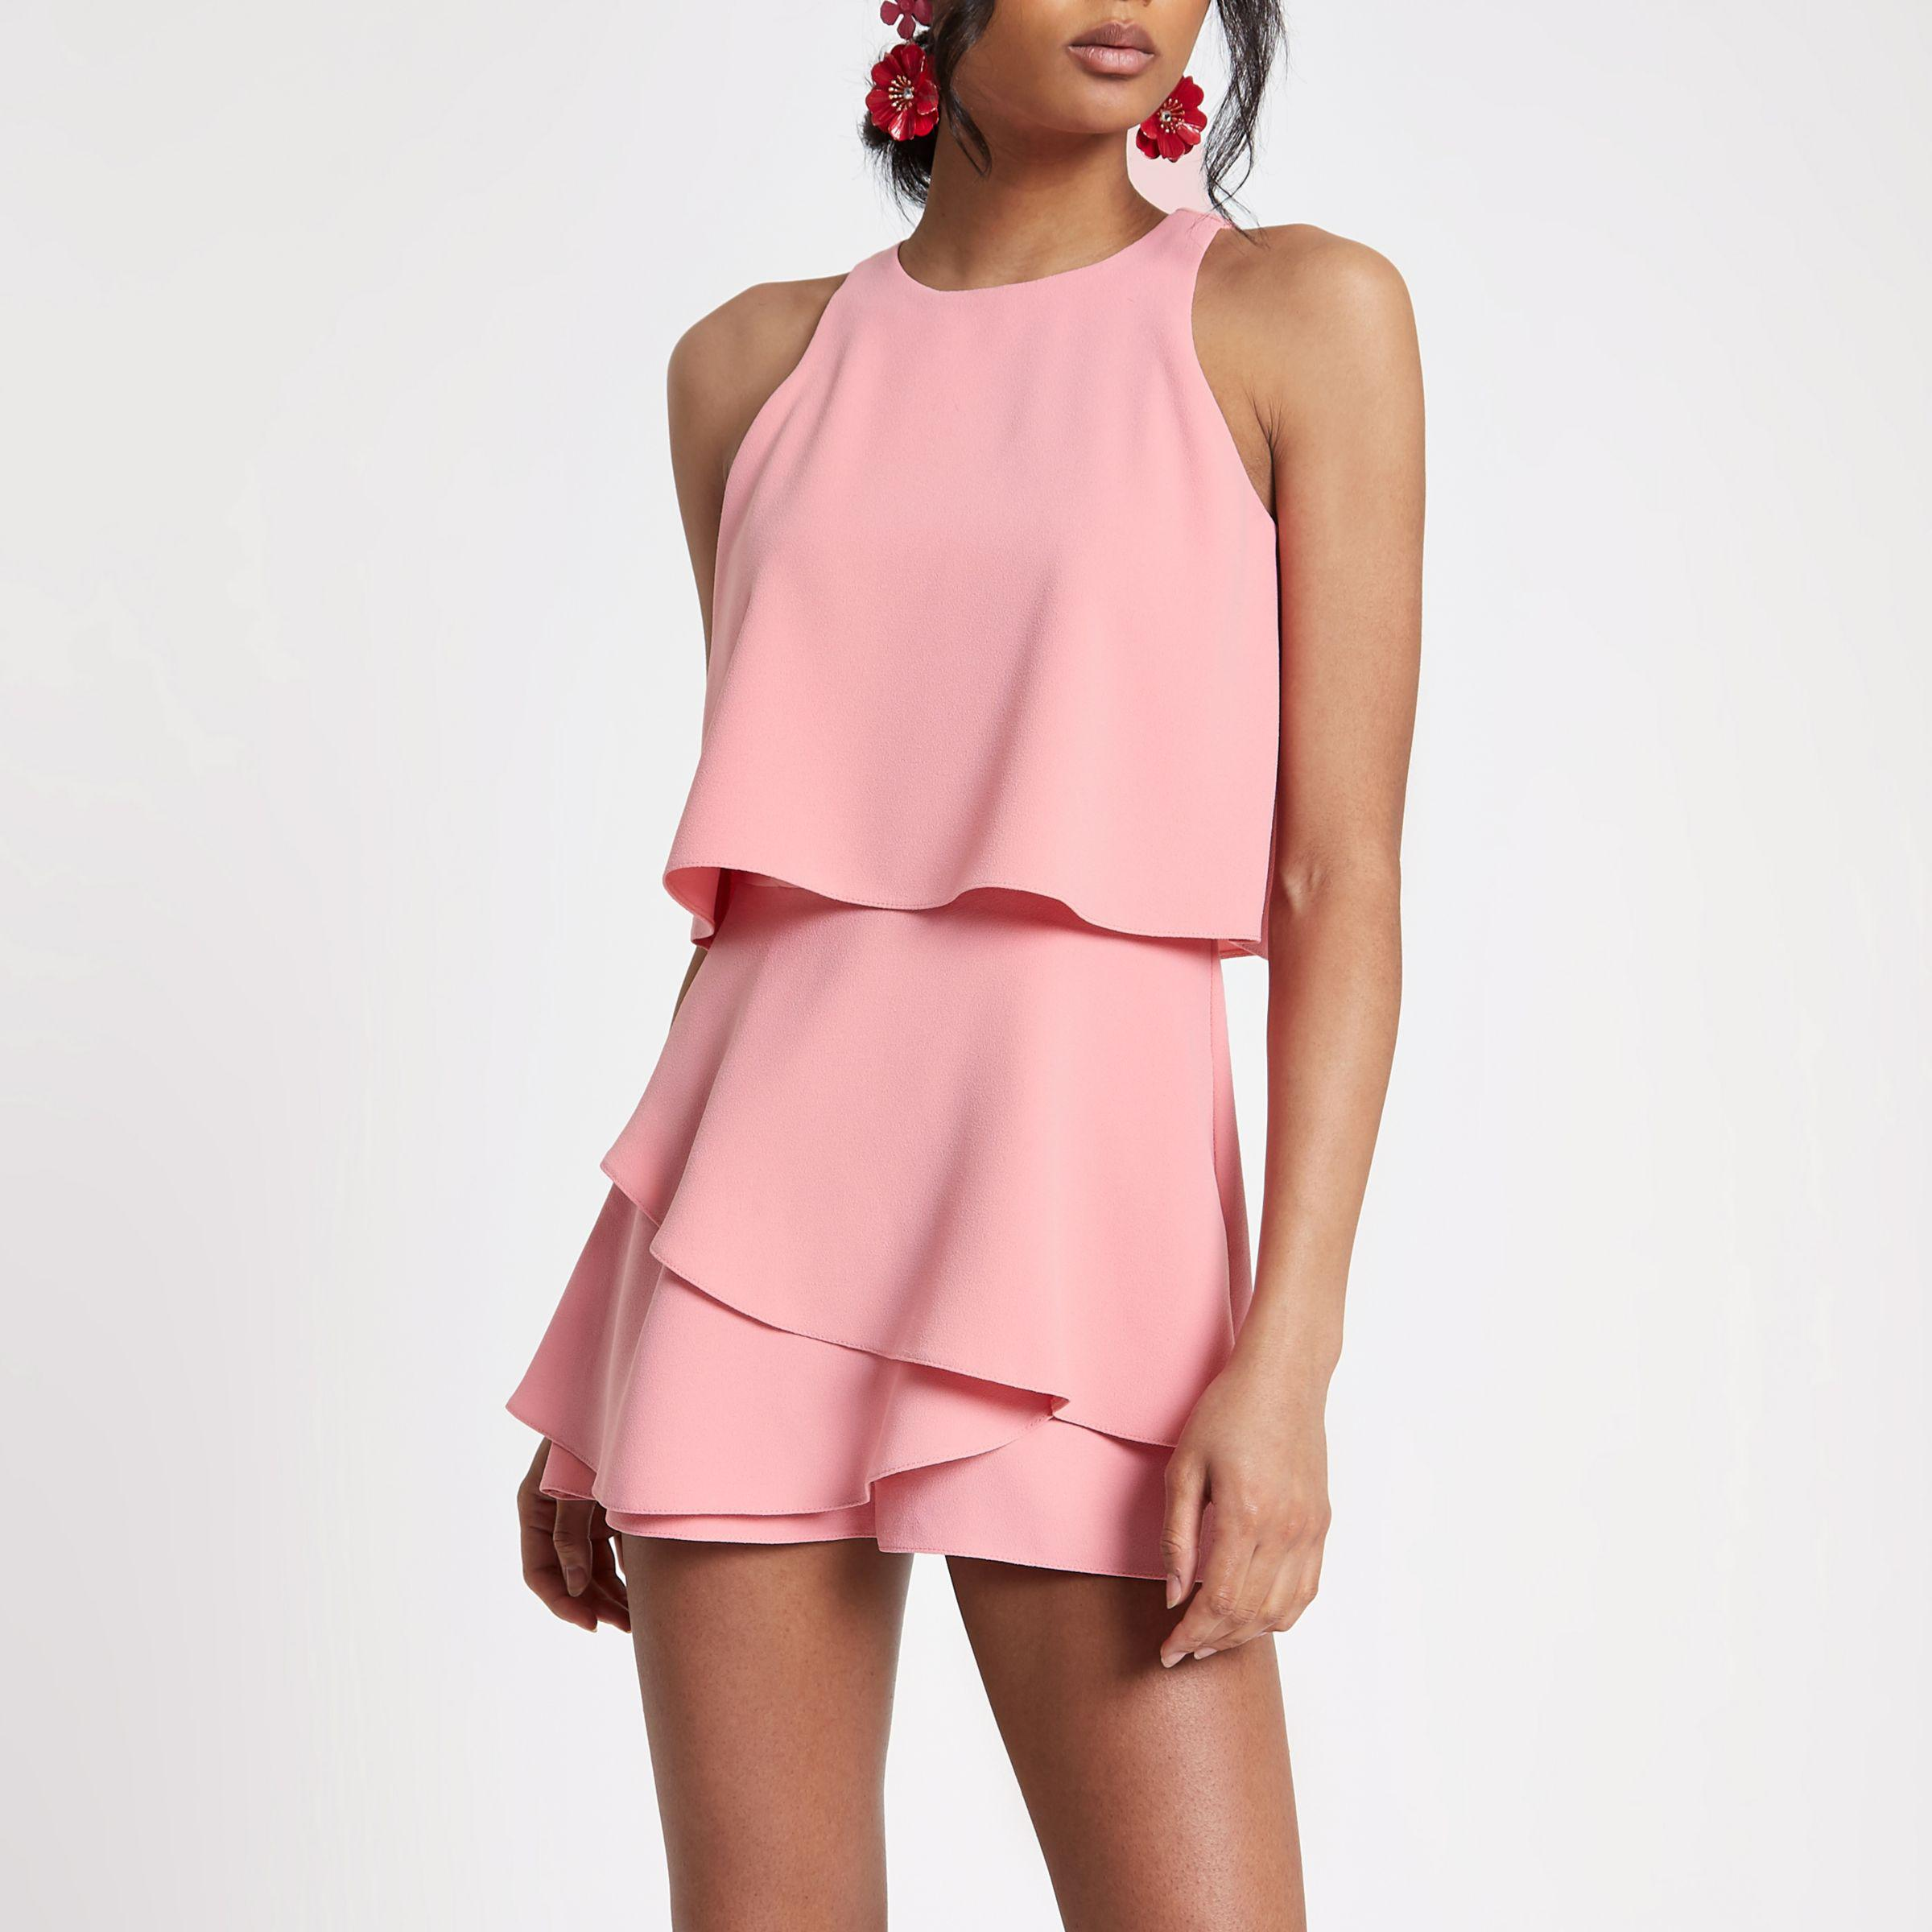 9e3c4900fc4 River Island Pink Tiered Frill Playsuit in Pink - Lyst